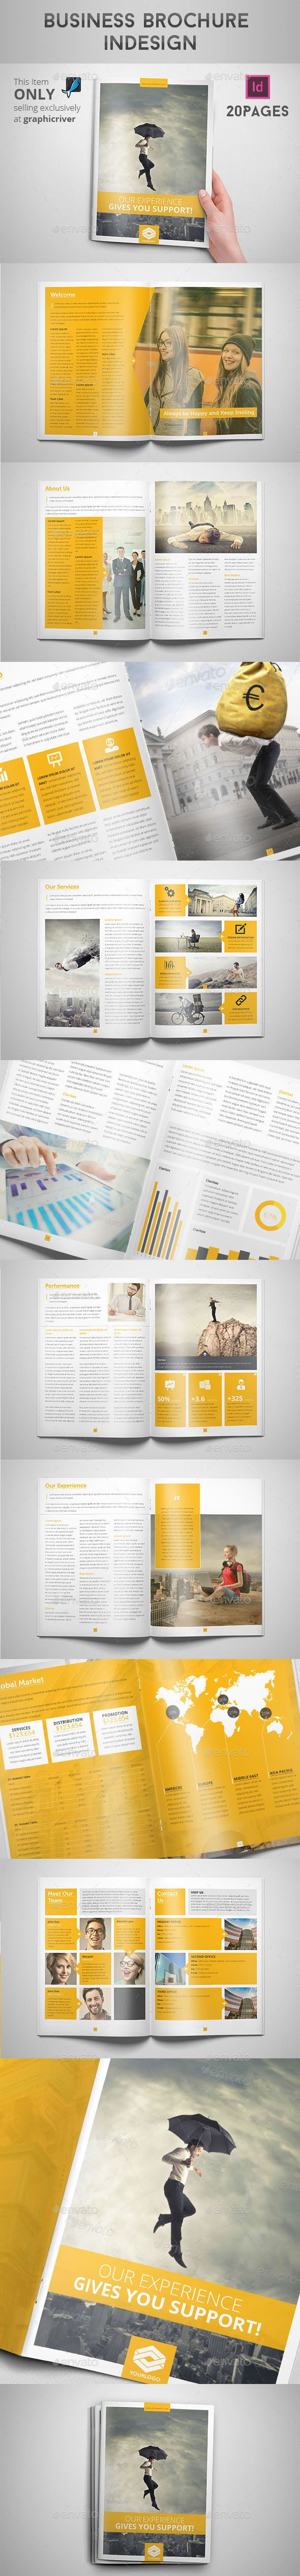 Business Brochure Indesign - Informational Brochures